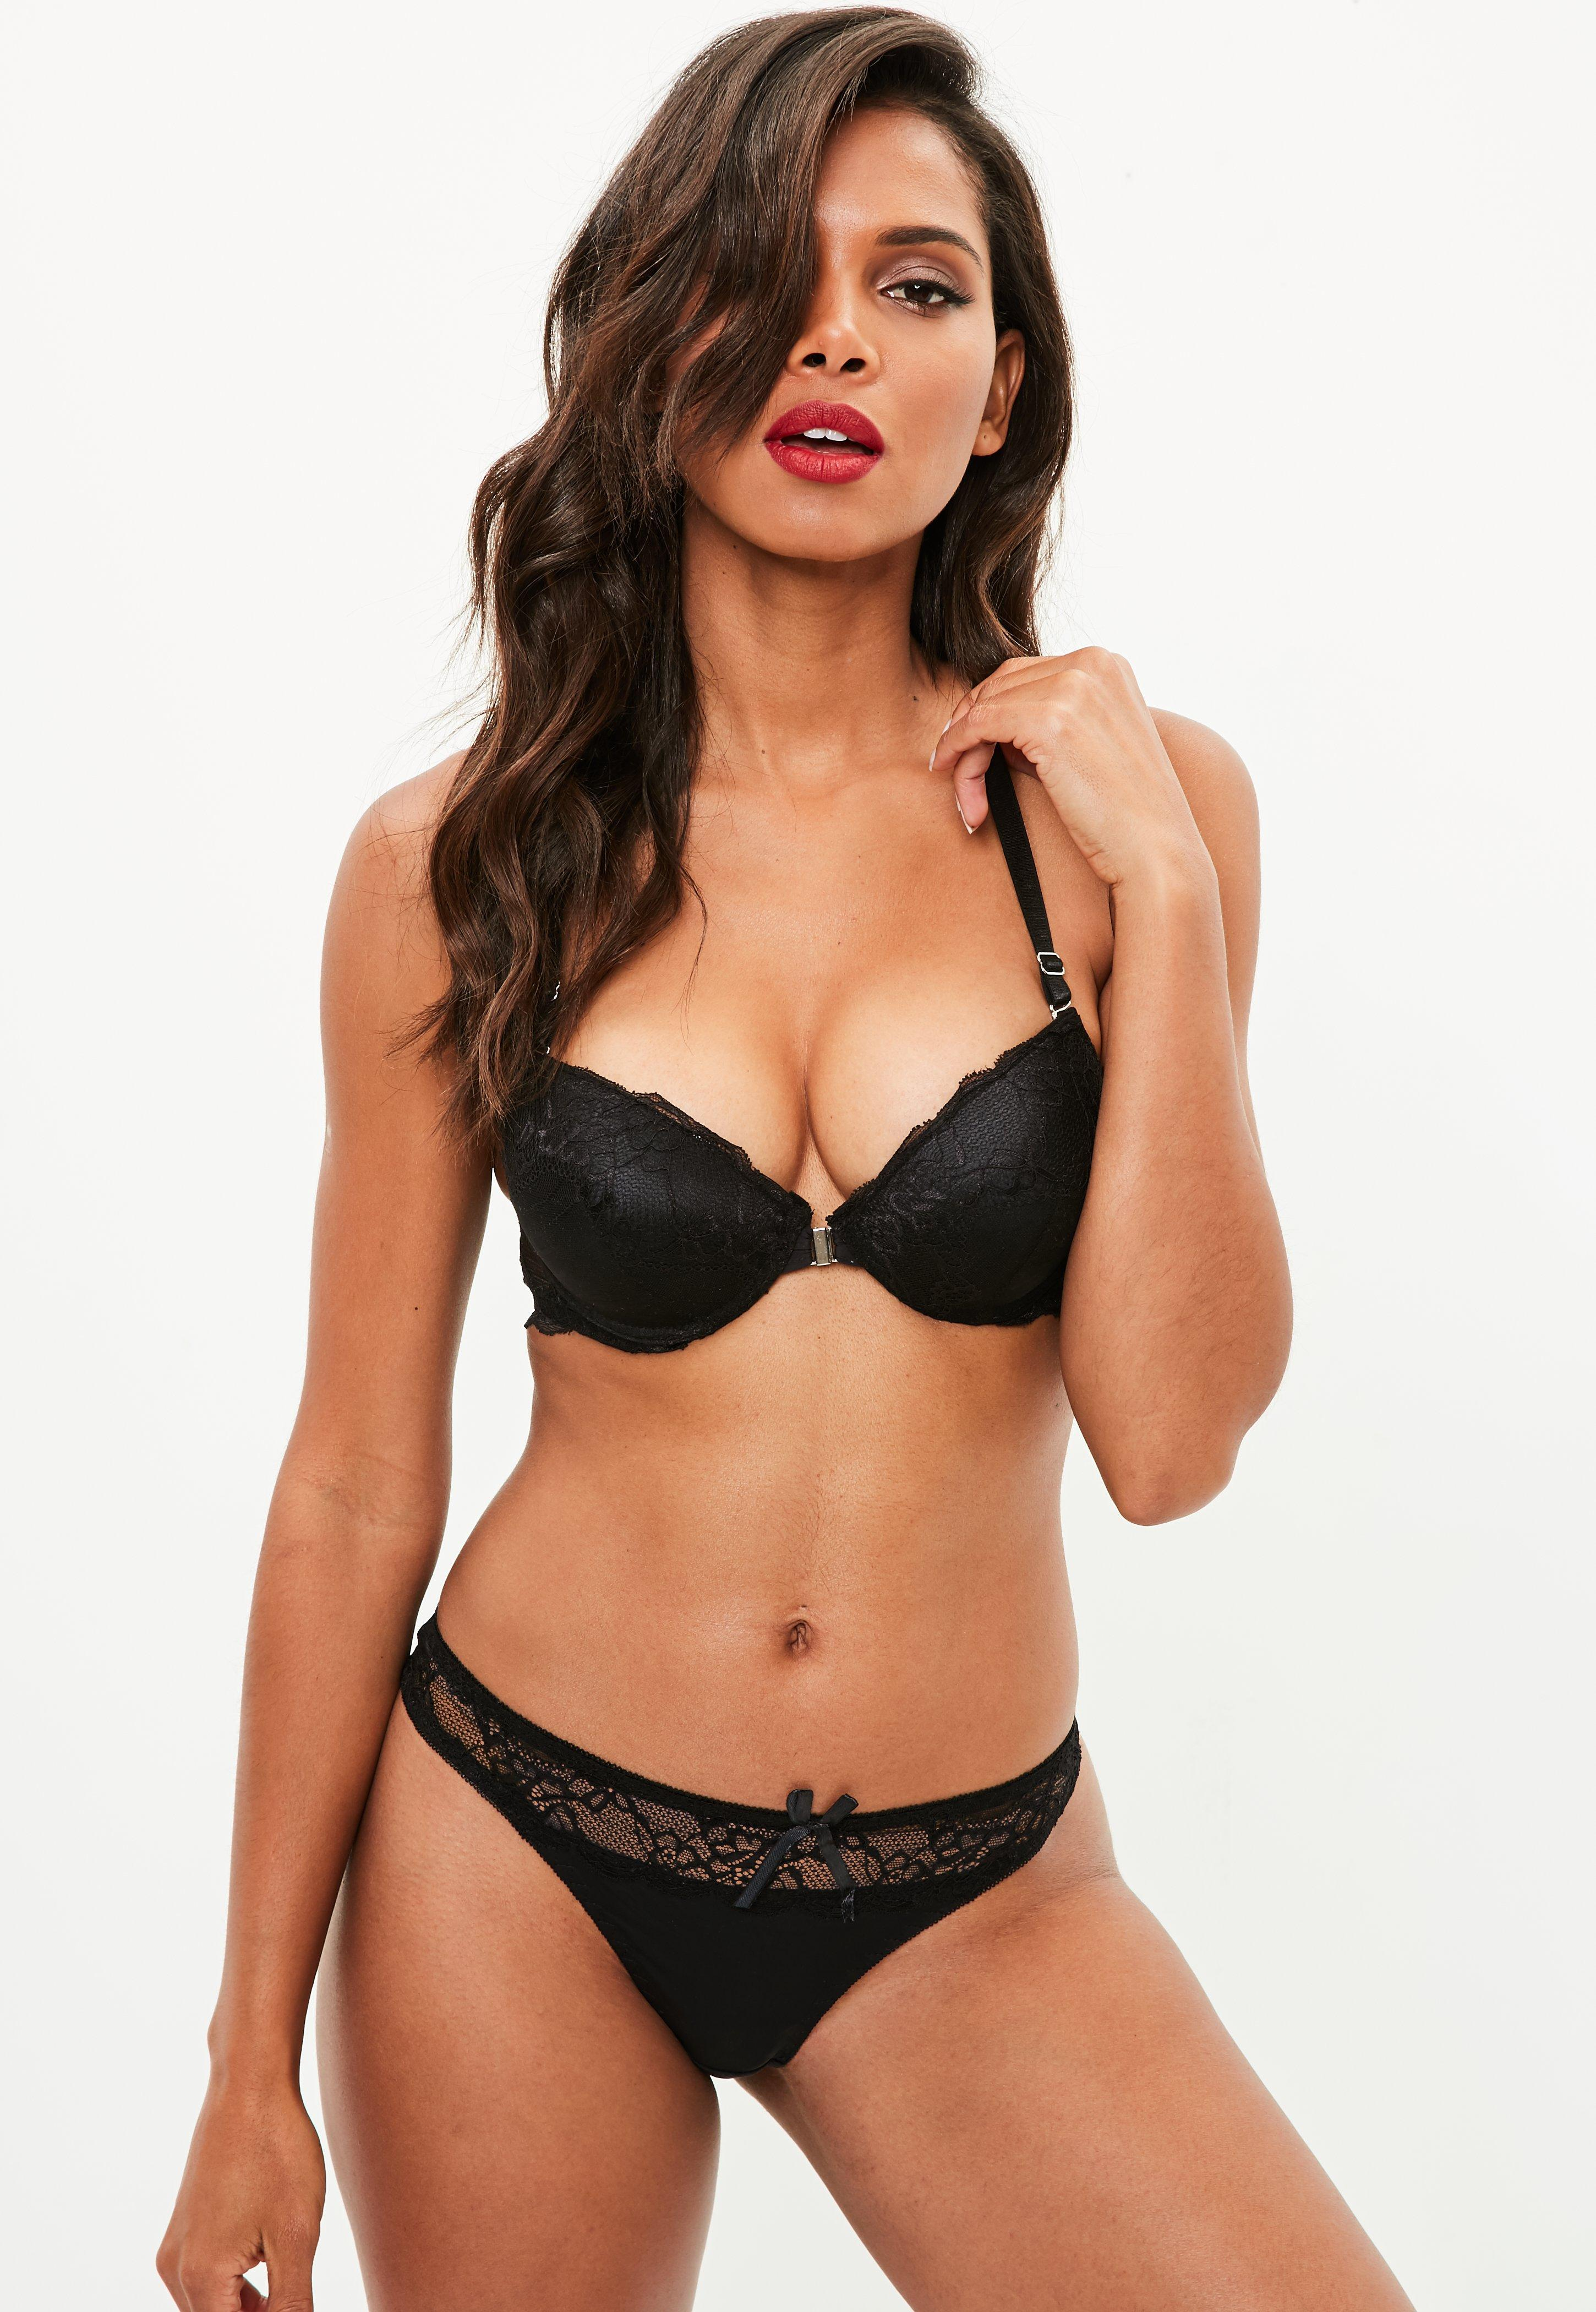 bf0ac609a1 Missguided Black Front Fastening Lace Racer Bra And Thong Set in ...